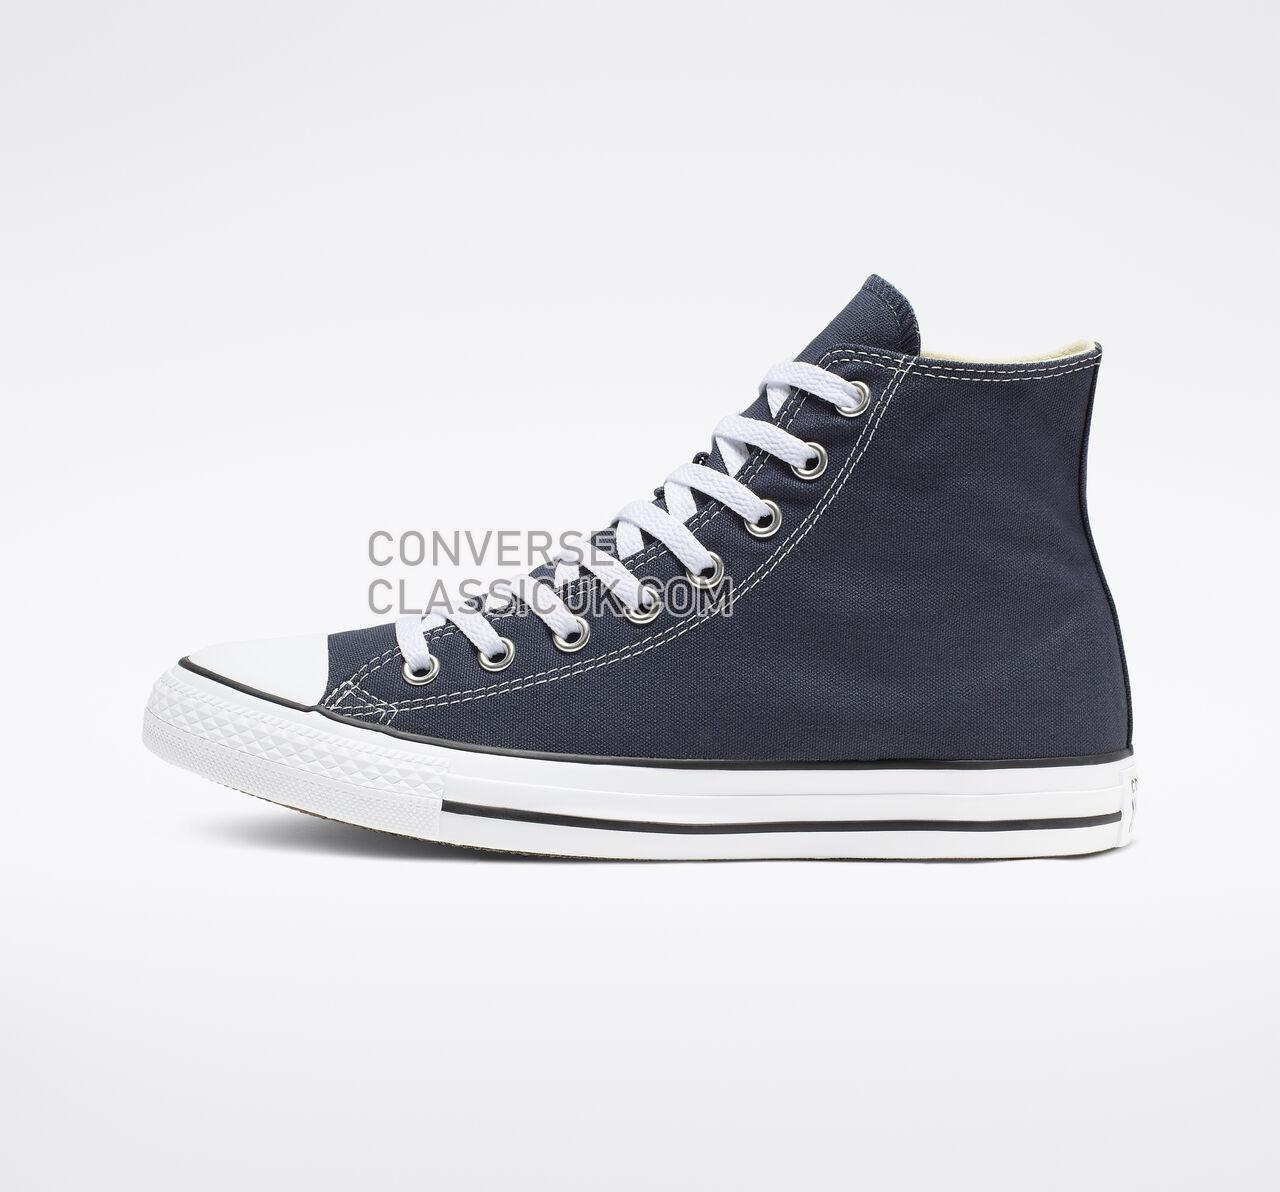 Converse Chuck Taylor All Star High Top Mens Womens Unisex M9622 Navy Shoes